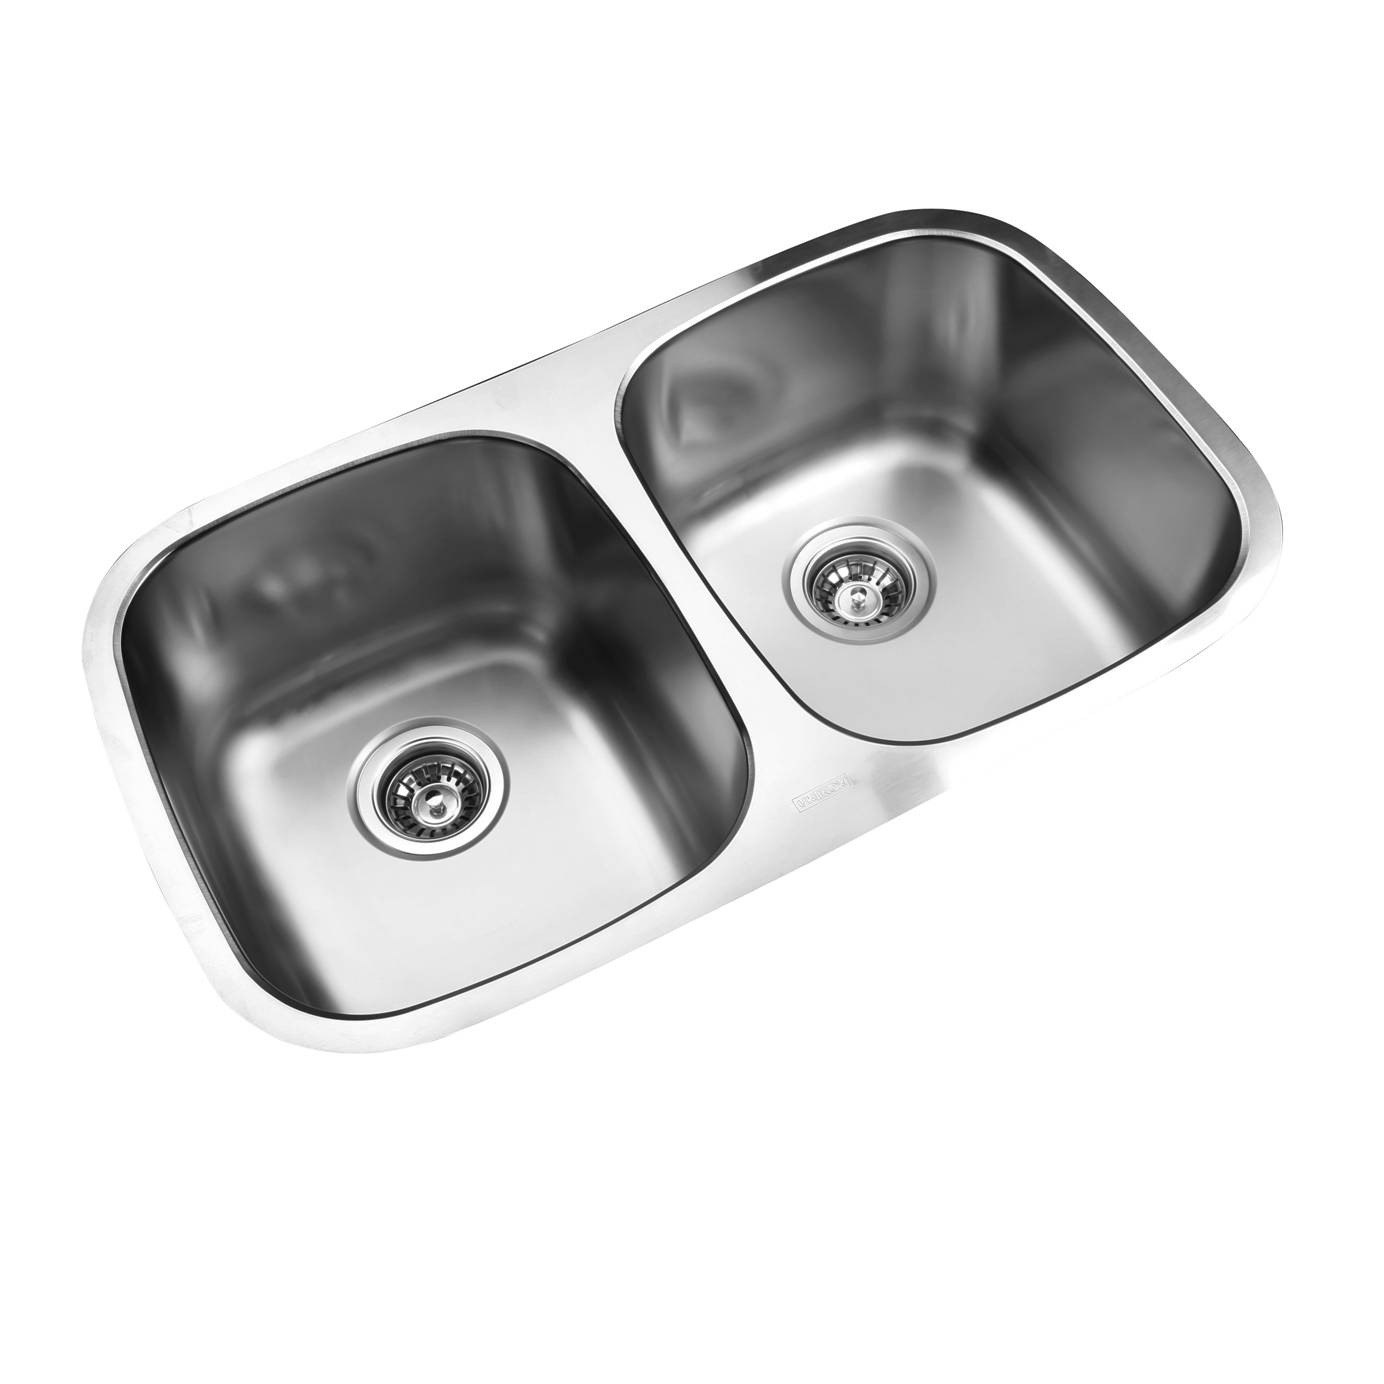 Ukinox D345.50.50.9C Undermount Double Bowl Stainless Steel Kitchen Sink With Cutting Board